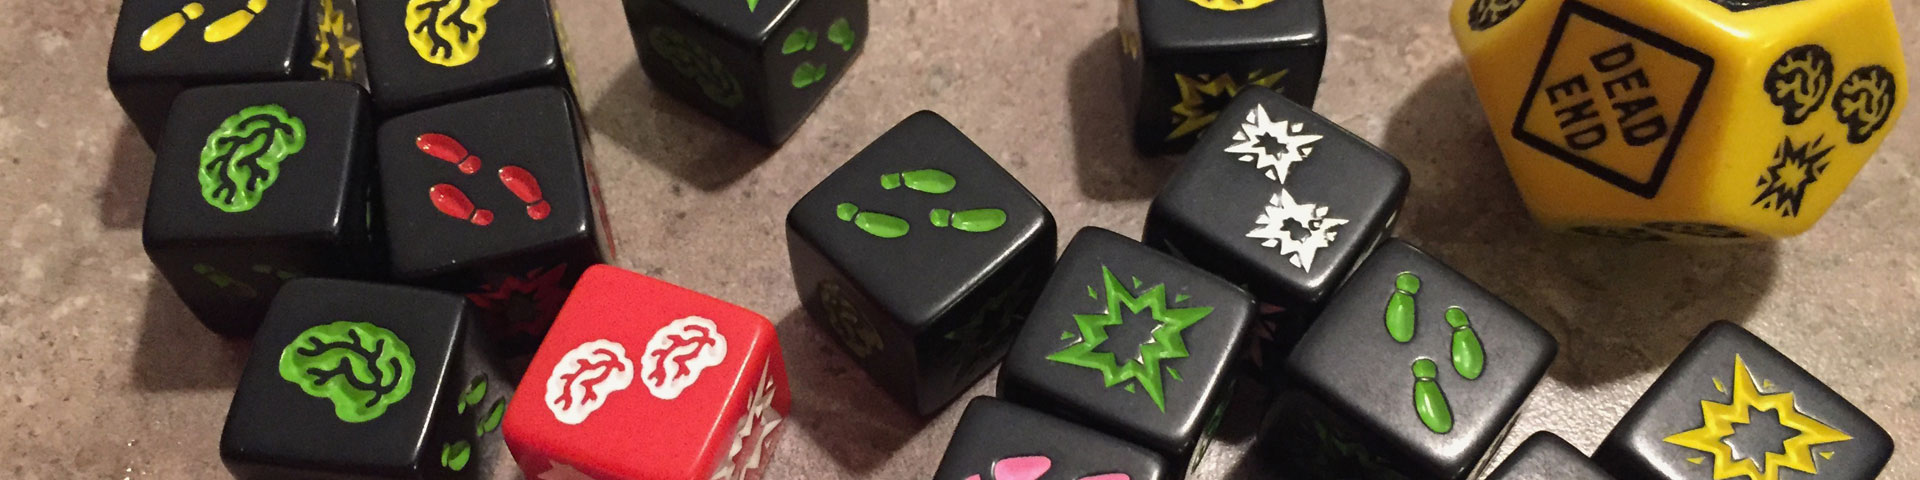 """Black and red dice feature one of three symbols: brains, footprints, or shotgun blast. A larger yellow die has """"dead end"""" printed on it."""